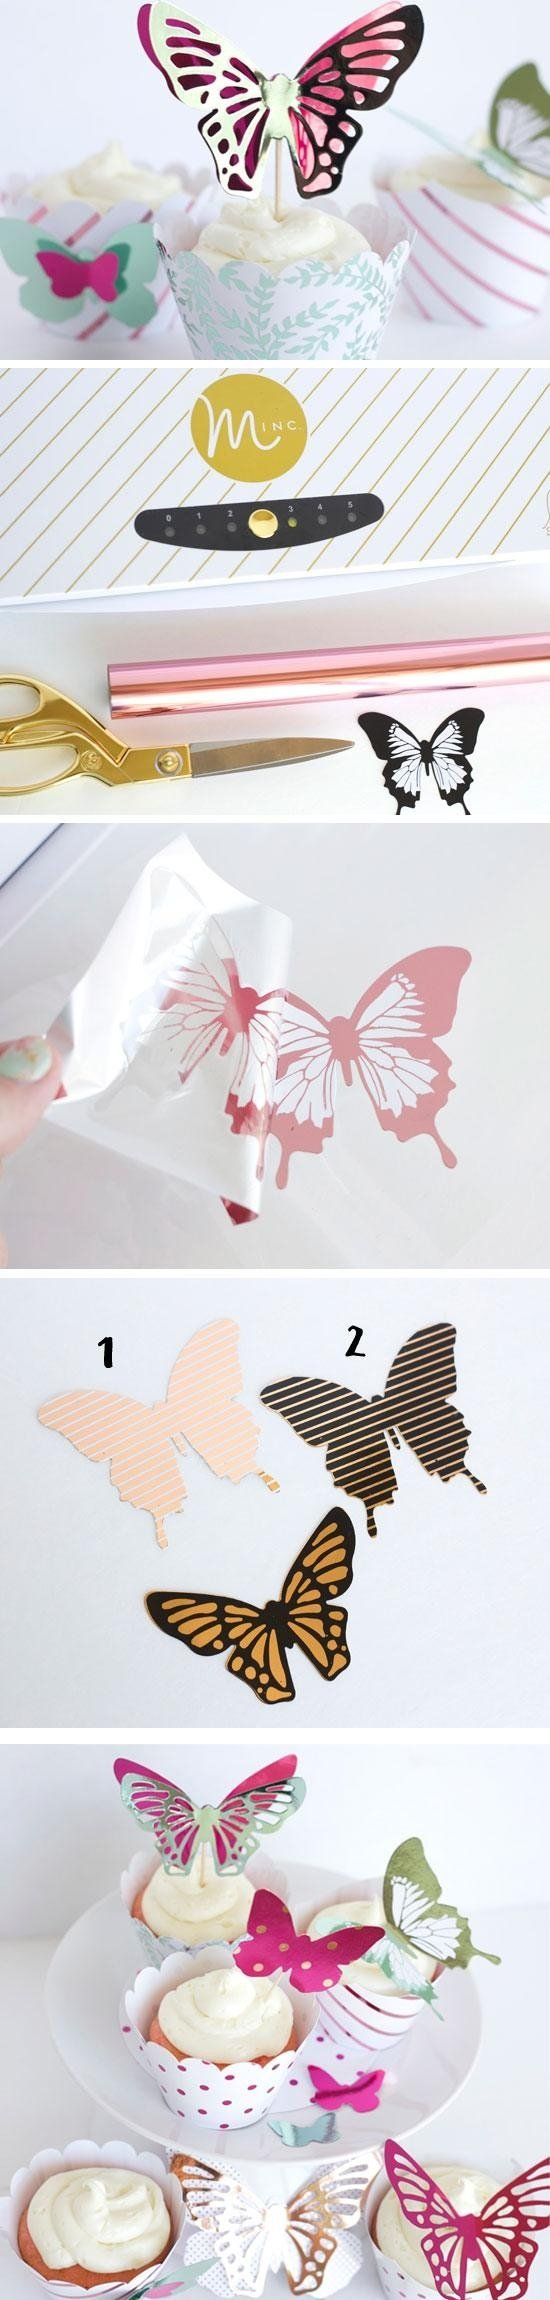 10 Best Awesome Sweet 16 Party Ideas 16 awesome sweet sixteen party ideas for girls 2020